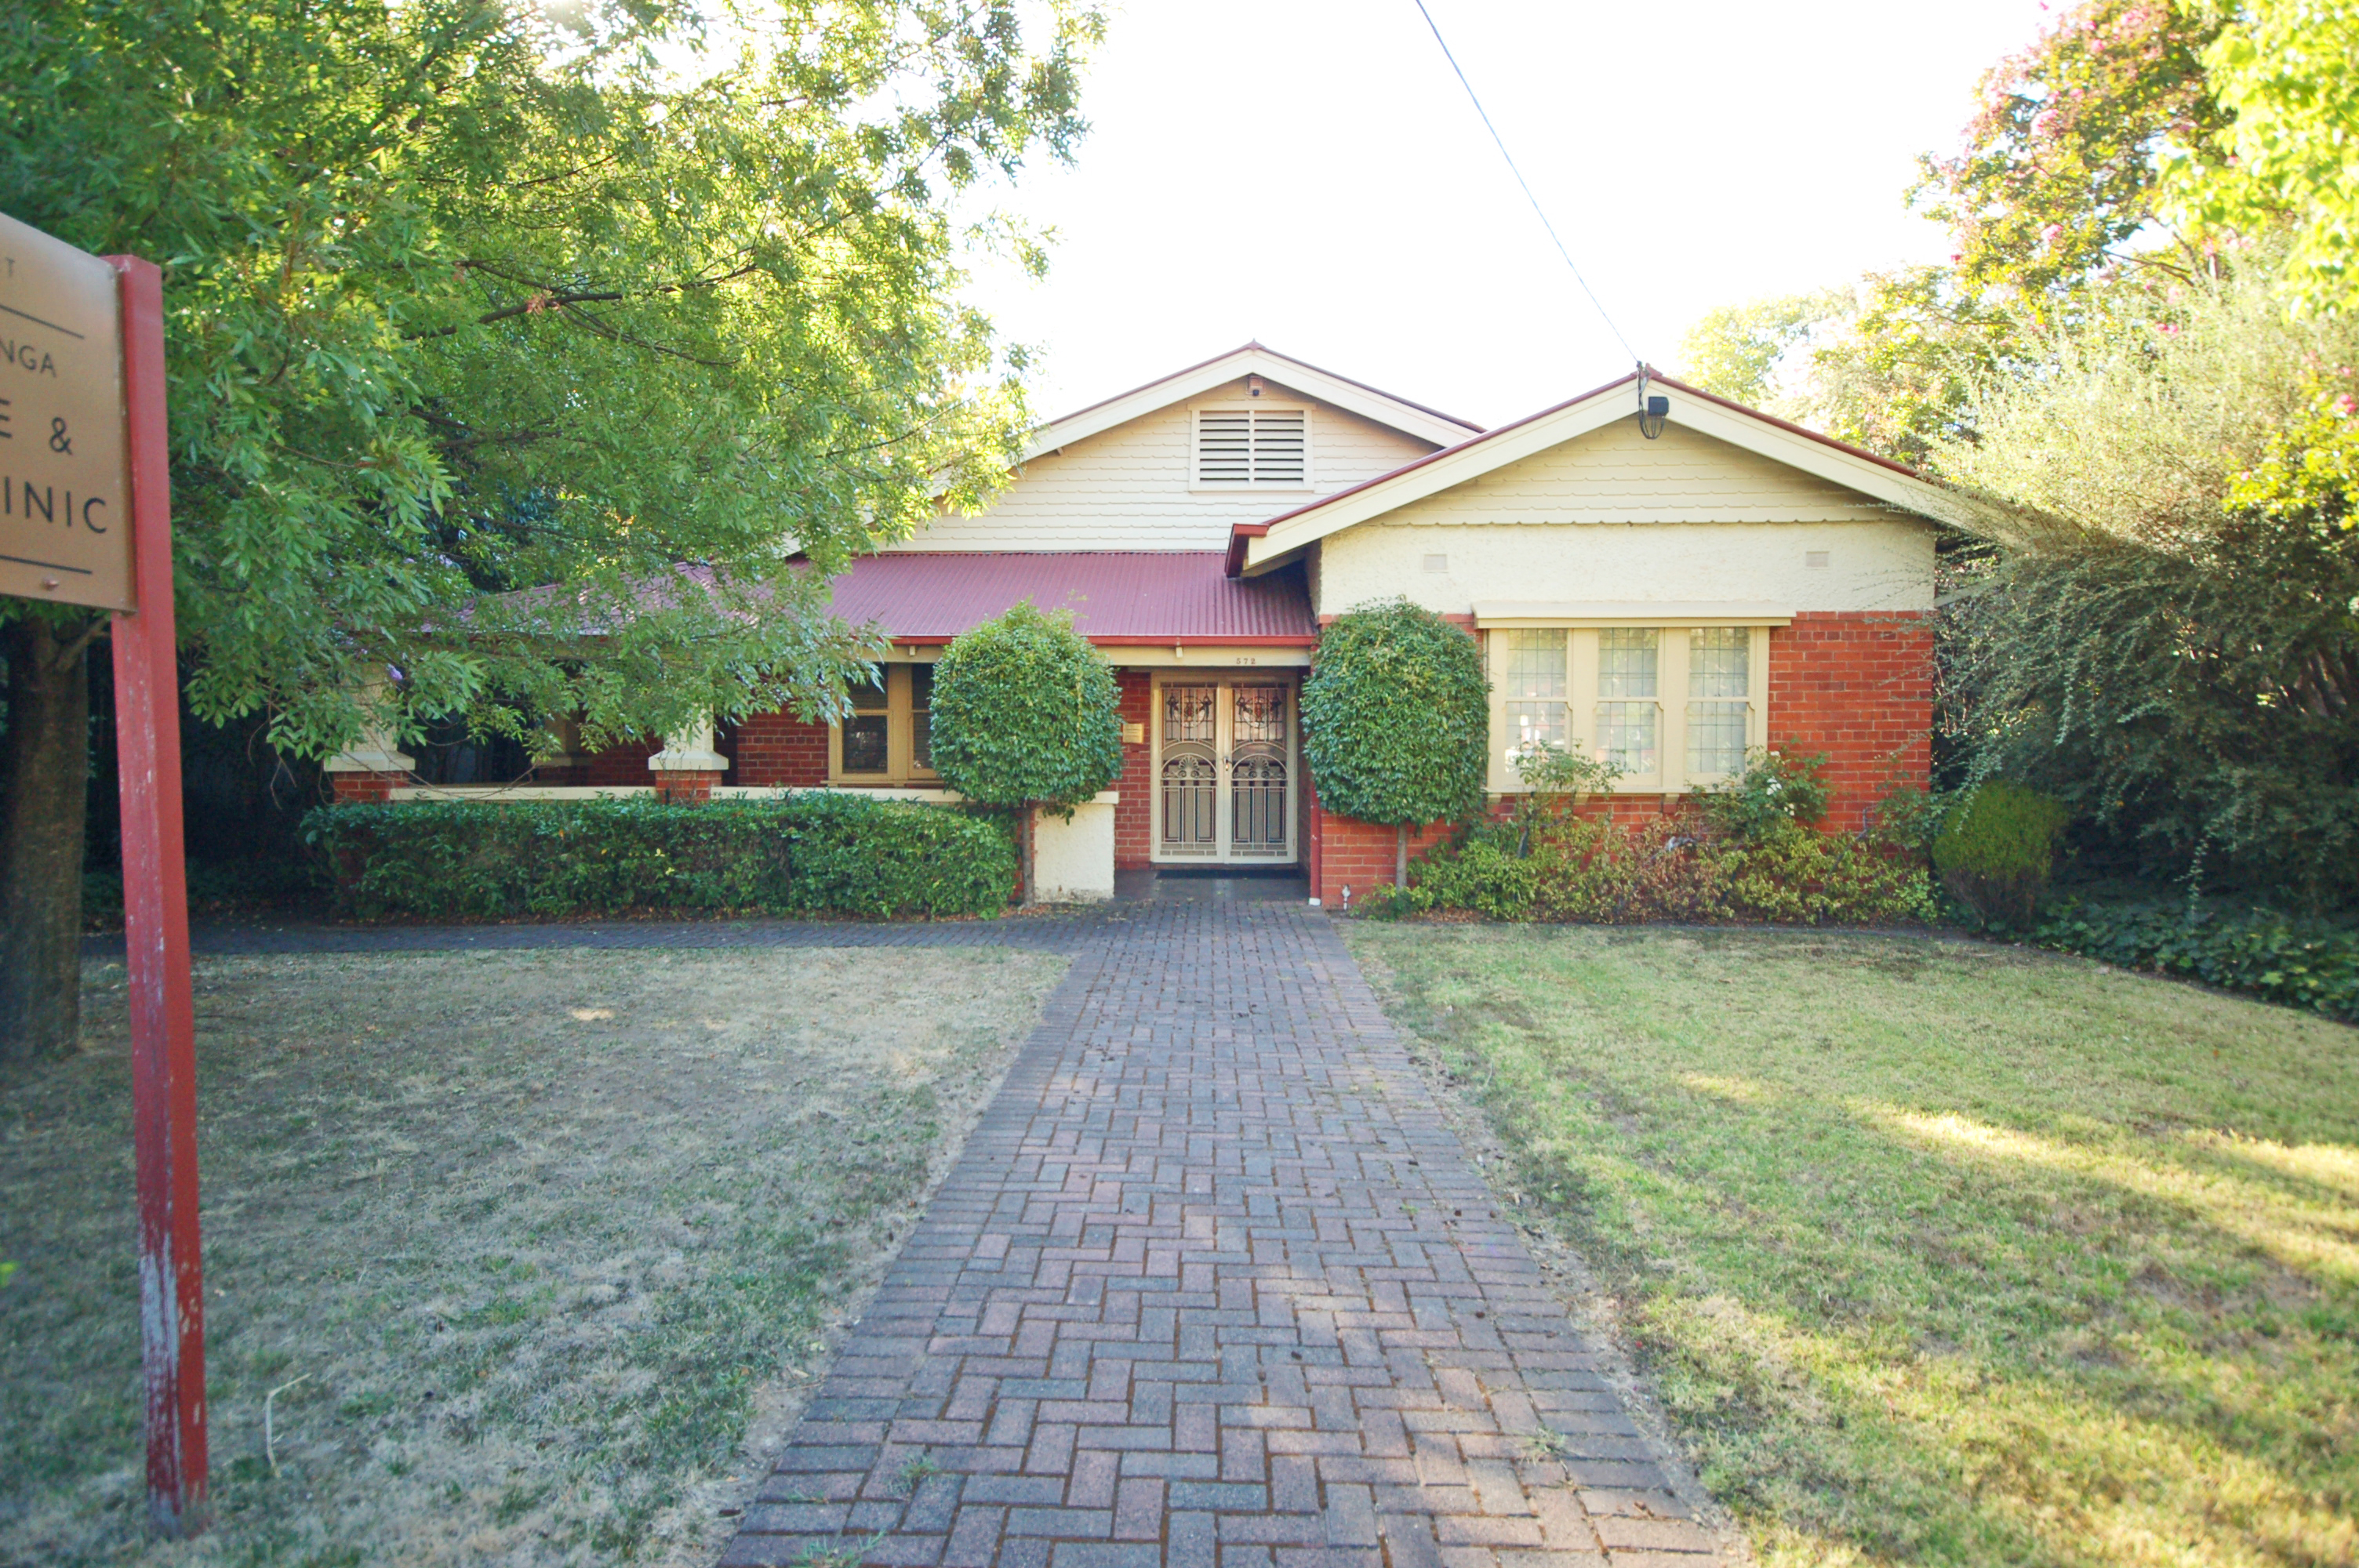 Property Report for 572 Kiewa Street, Albury NSW 2640